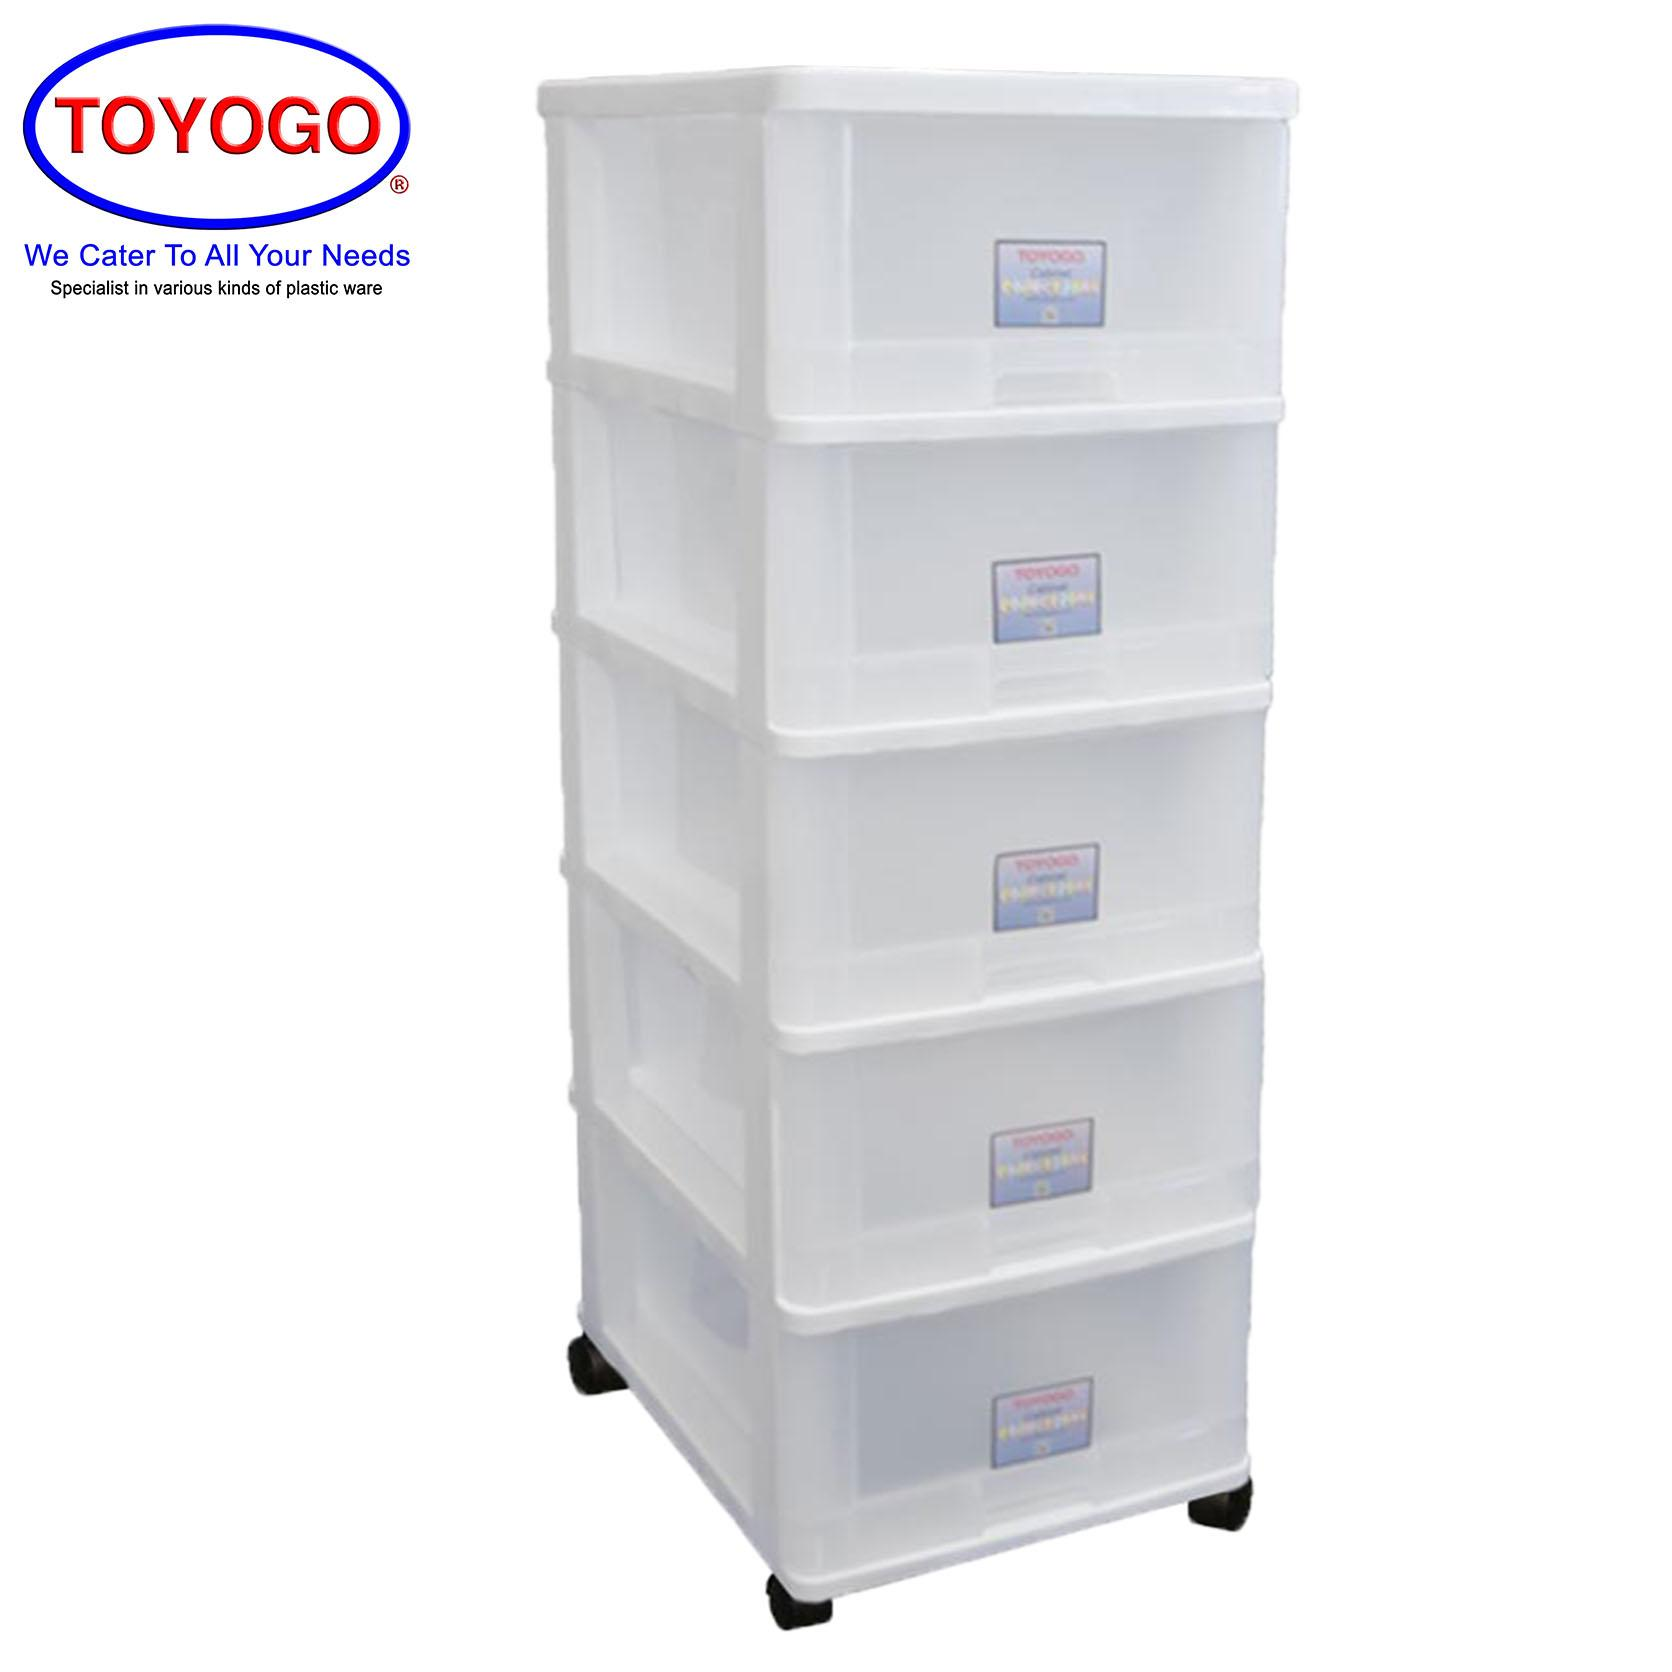 Toyogo Plastic Storage Cabinet / Drawer With Wheels (5 Tier) (807-5)